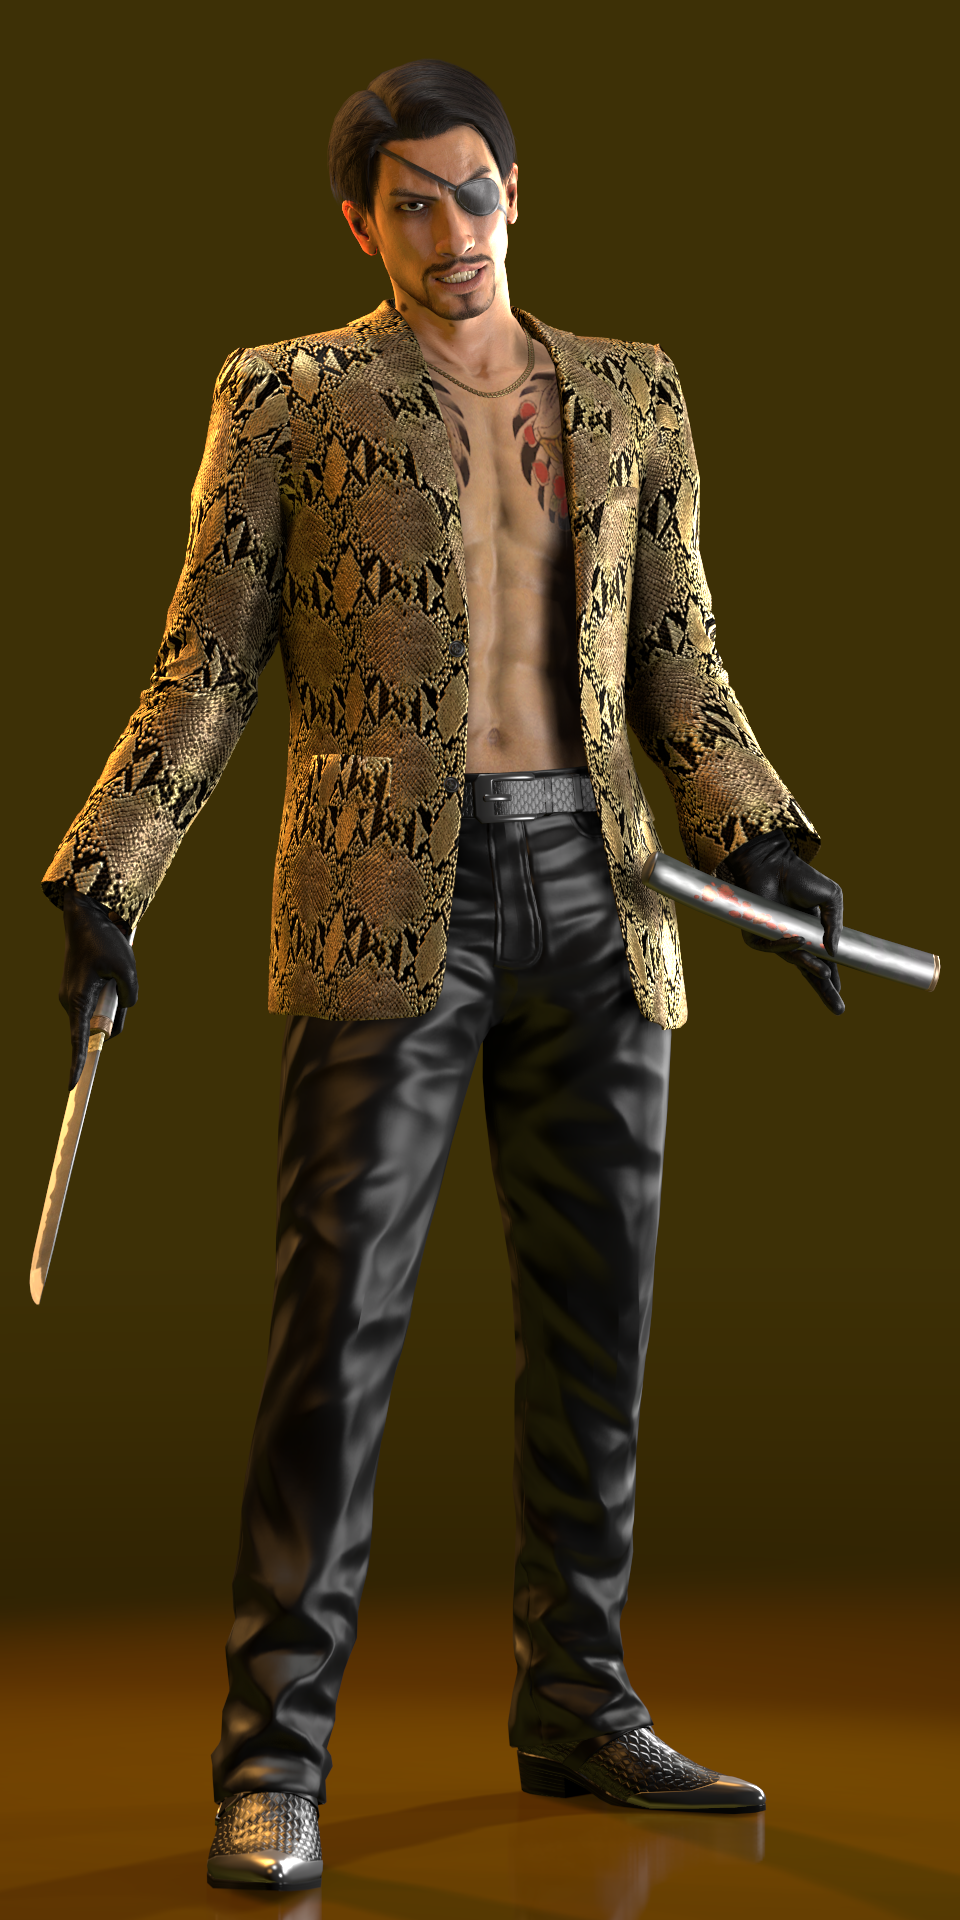 Goro Majima Default By Yare Yare Dong On Deviantart Goro majima is one of kazuma kiryu's most trustworthy allies, and his biggest rival, in the yakuza series. goro majima default by yare yare dong